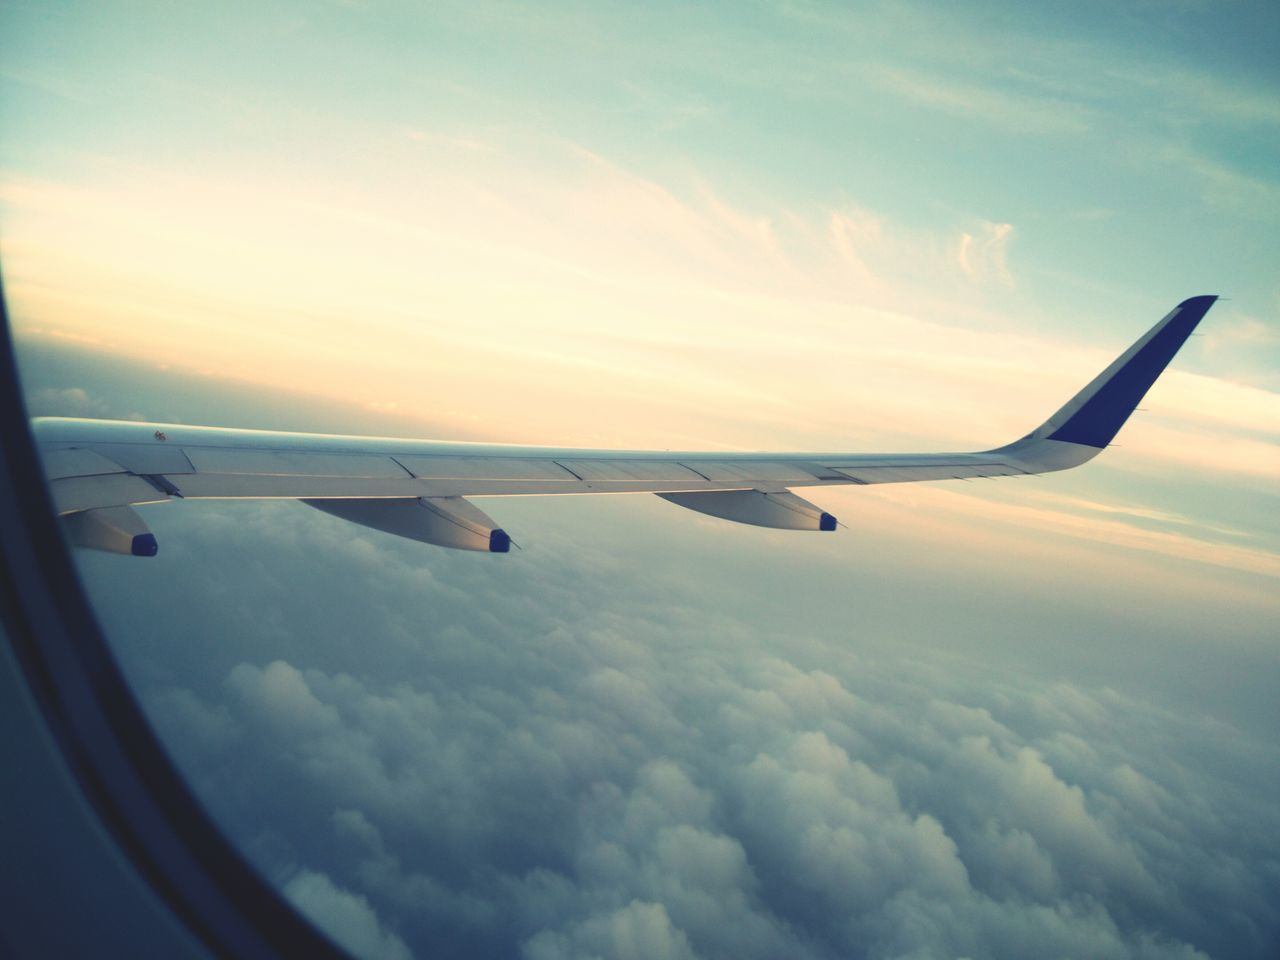 airplane, sky, cloud - sky, transportation, air vehicle, flying, journey, mode of transport, travel, aircraft wing, mid-air, no people, outdoors, nature, day, jet engine, airplane wing, sunset, commercial airplane, beauty in nature